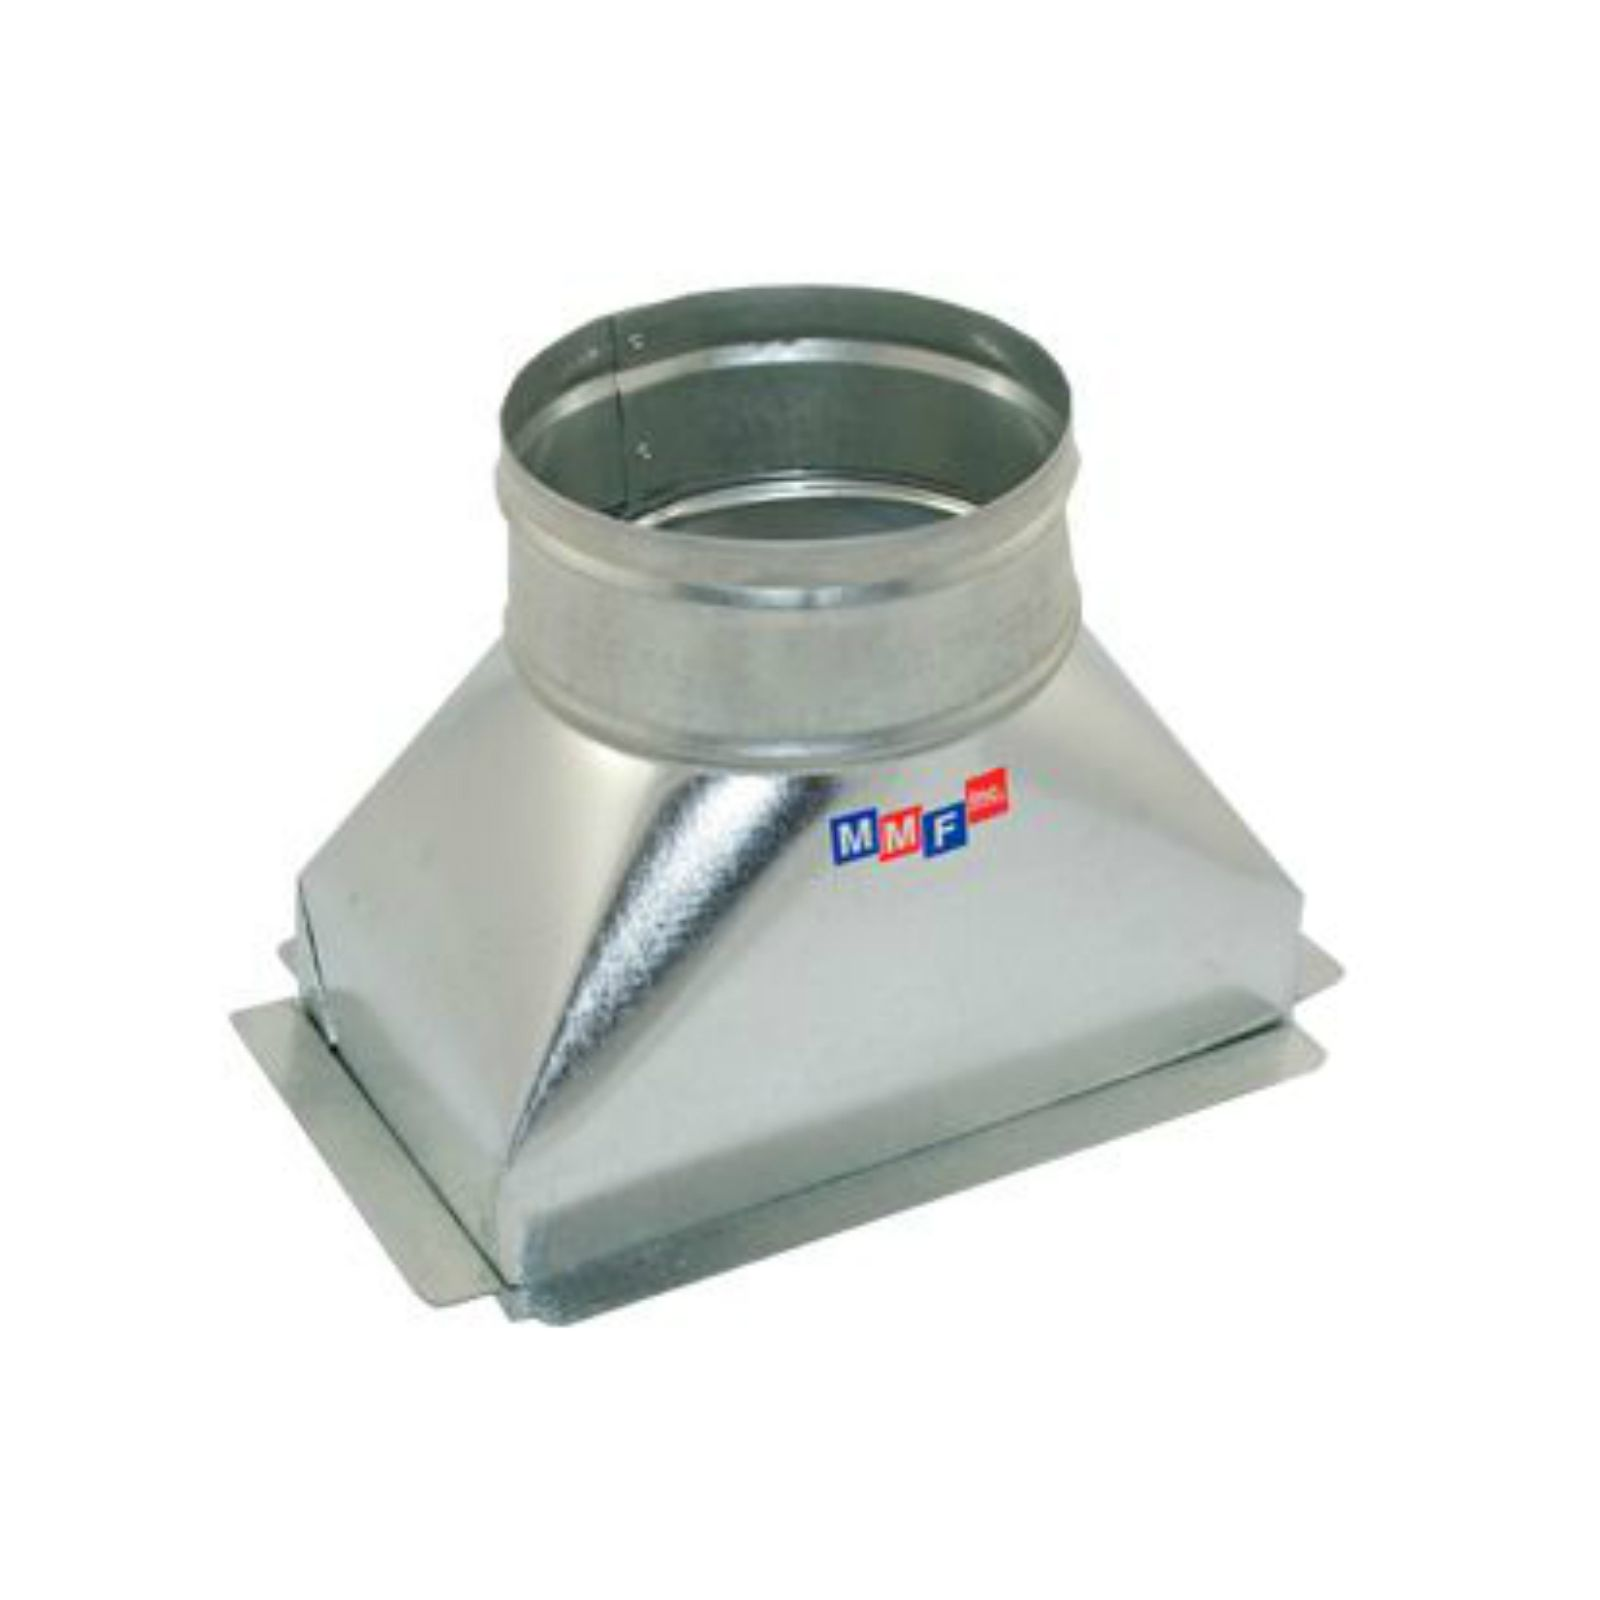 "Modular Metal BTSFI120607P - Sealed Floor Box - 26 Gauge - With Plaster Ground Flange 12"" X 06"" To 07"" Round"